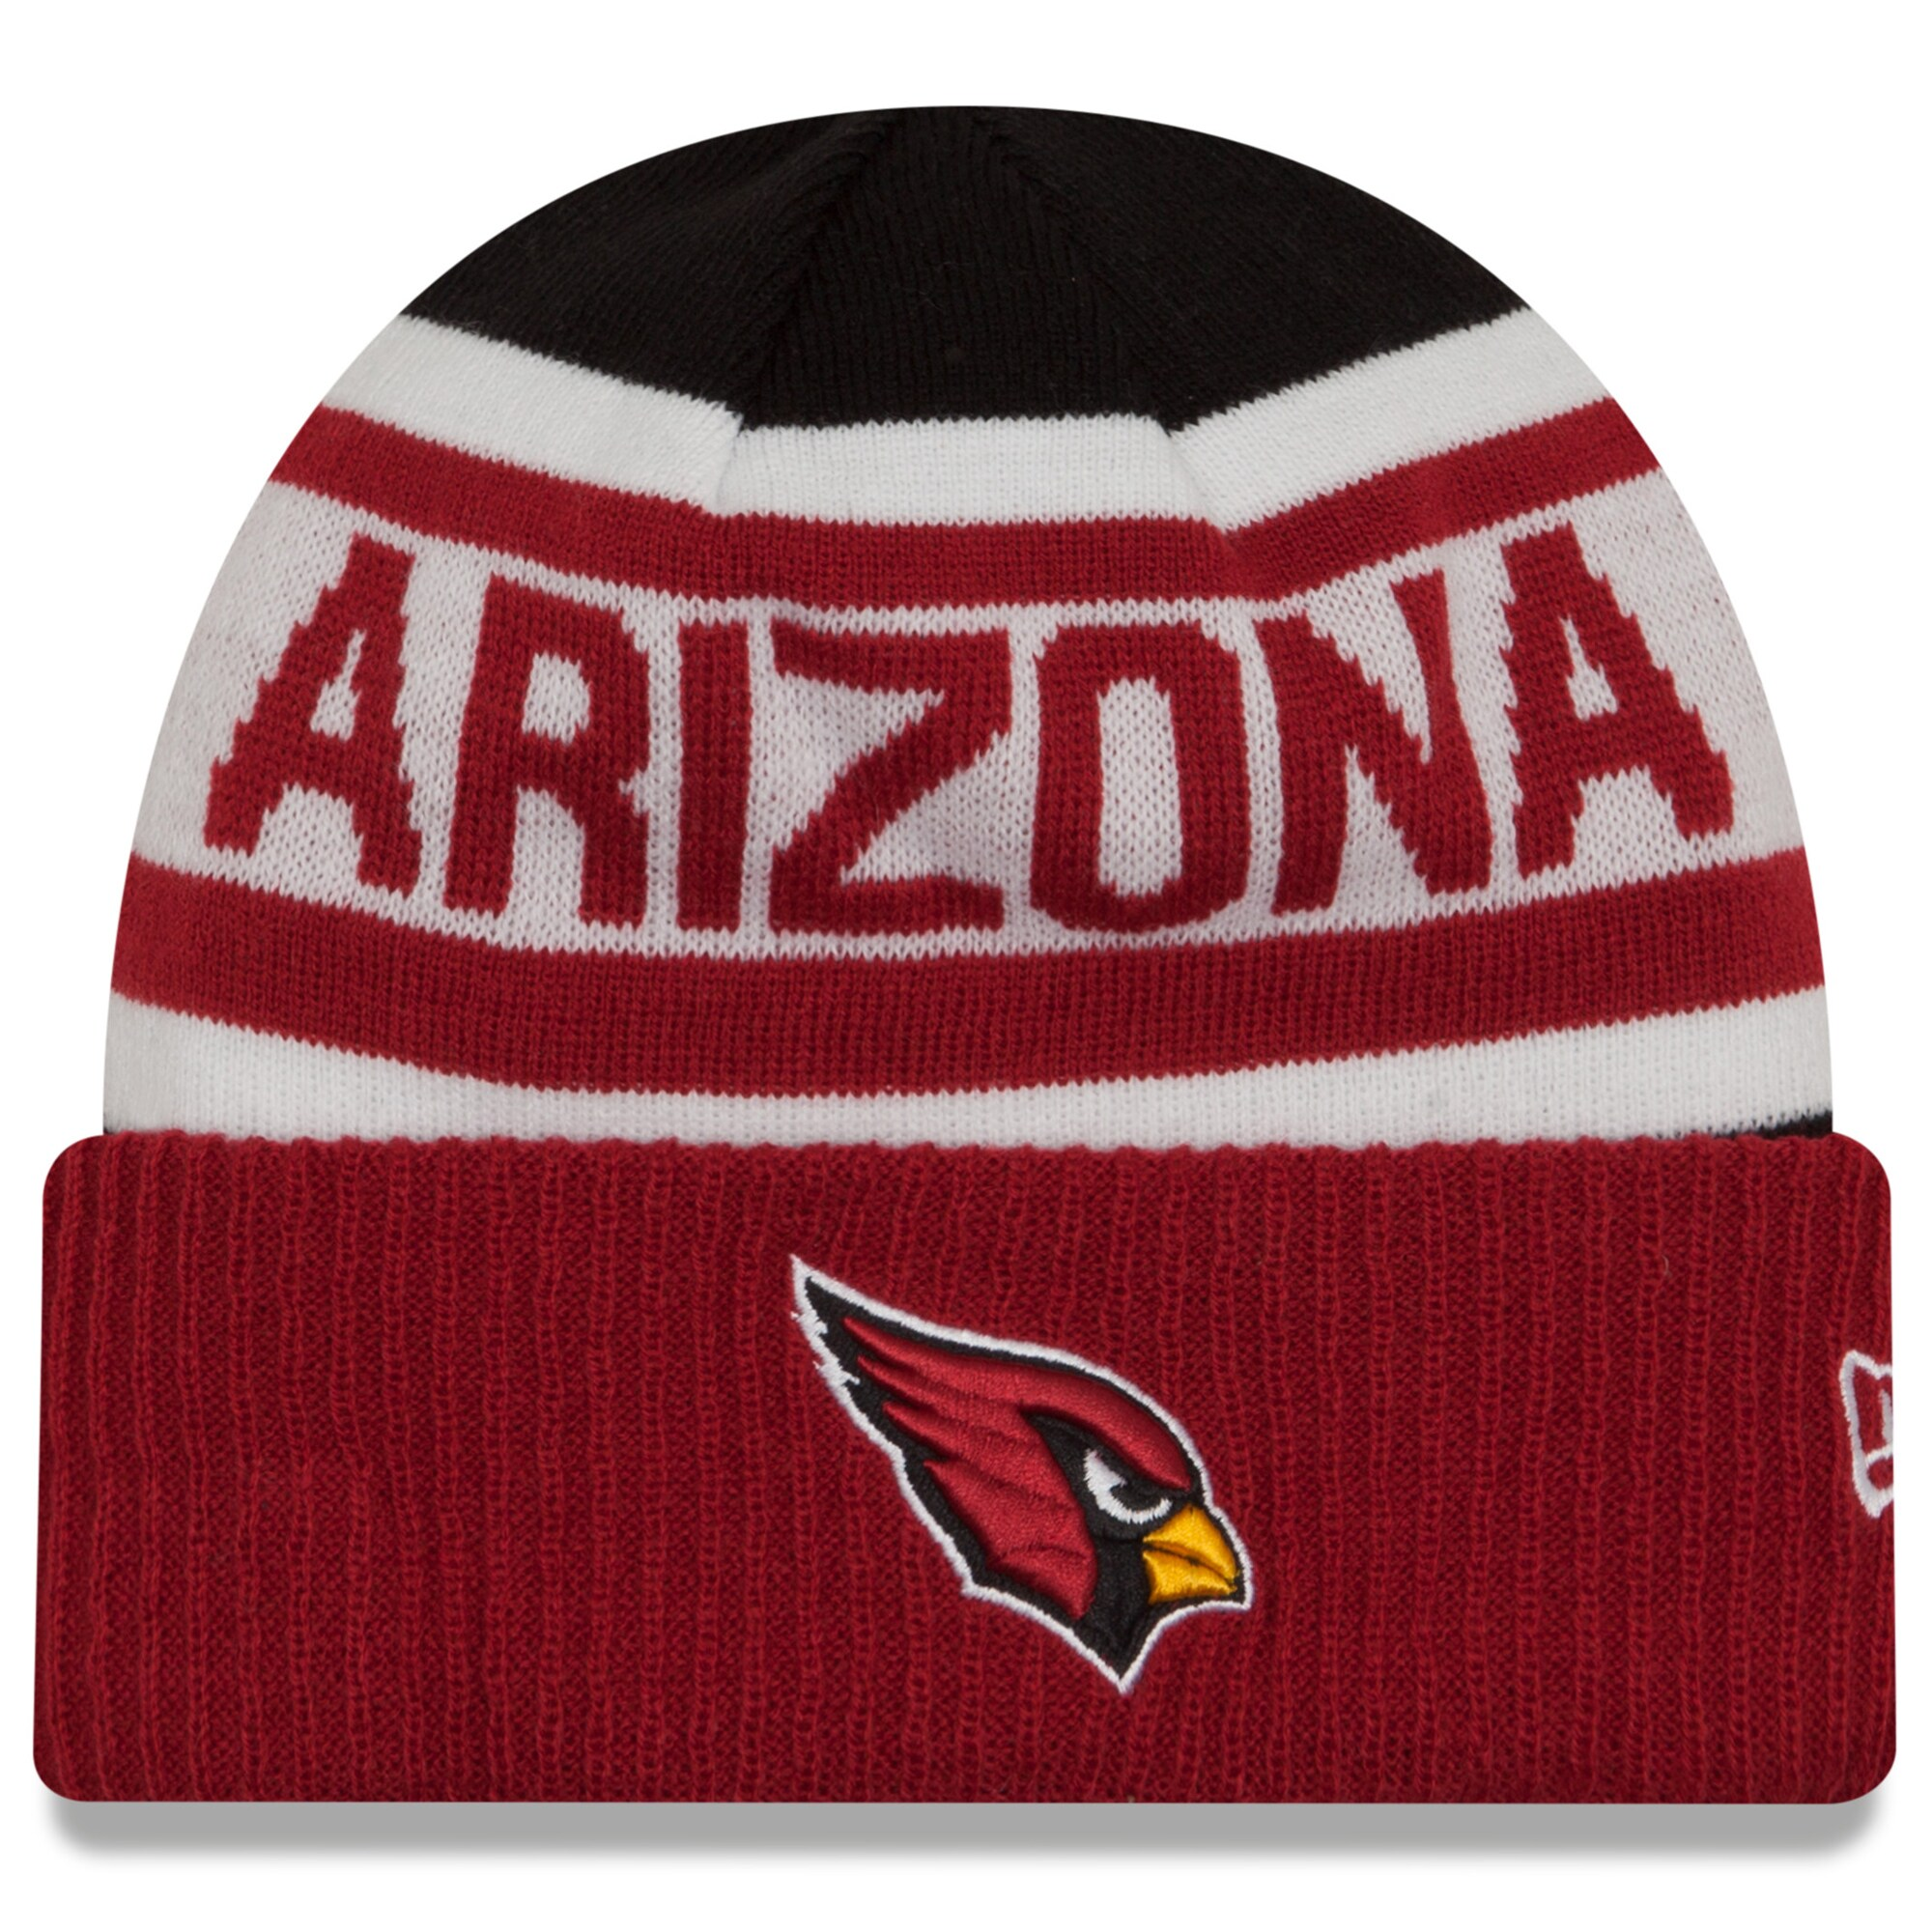 Arizona Cardinals New Era Biggest Fan 2.0 Cuffed Knit Hat - Black/Cardinal